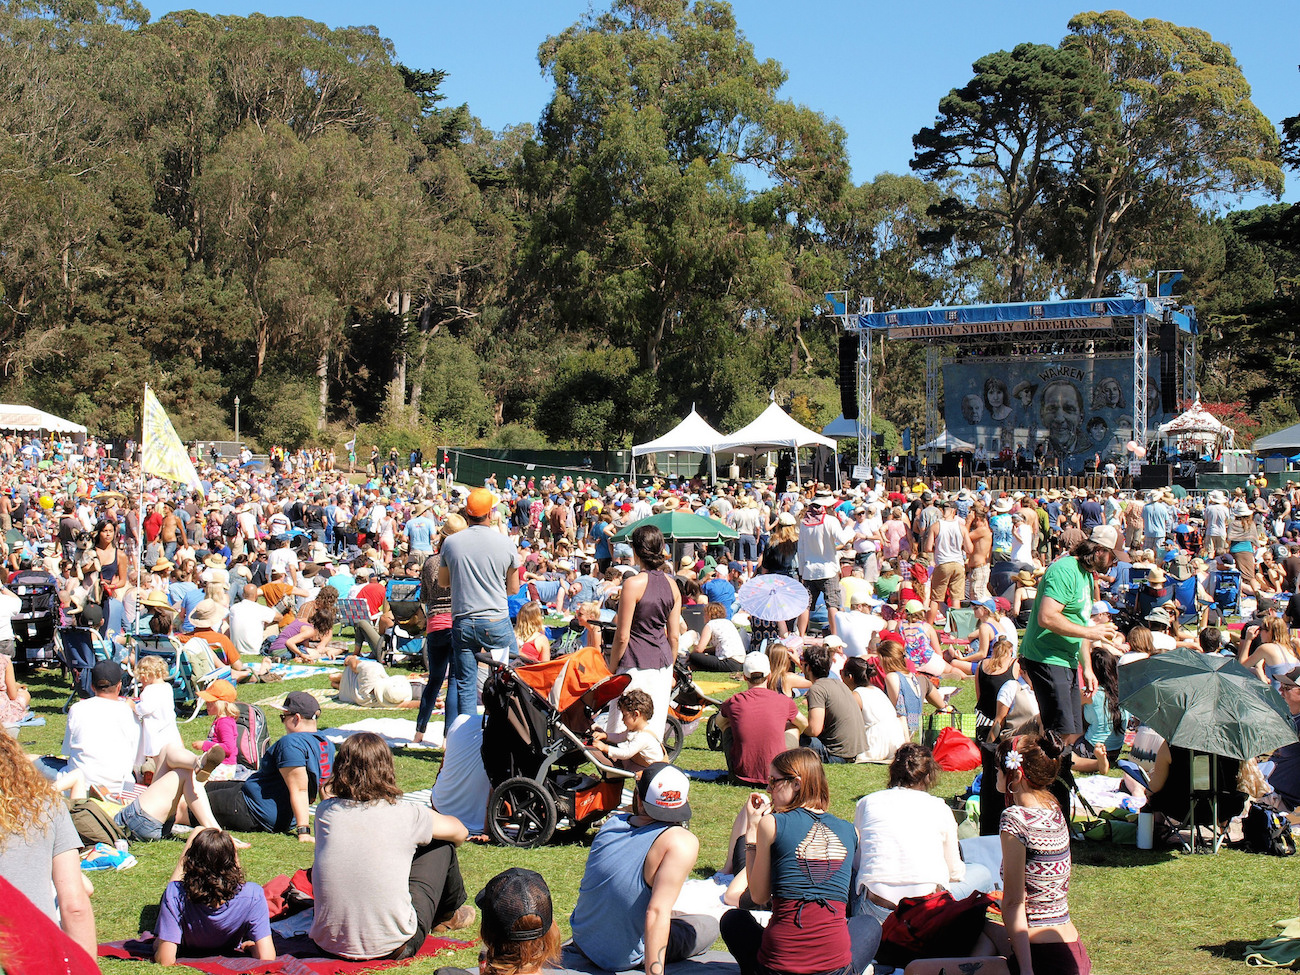 PHOTO 4_7 MUSIC FESTIVALS IN THE BAY AREA TO GET YOUR GROOVE ON